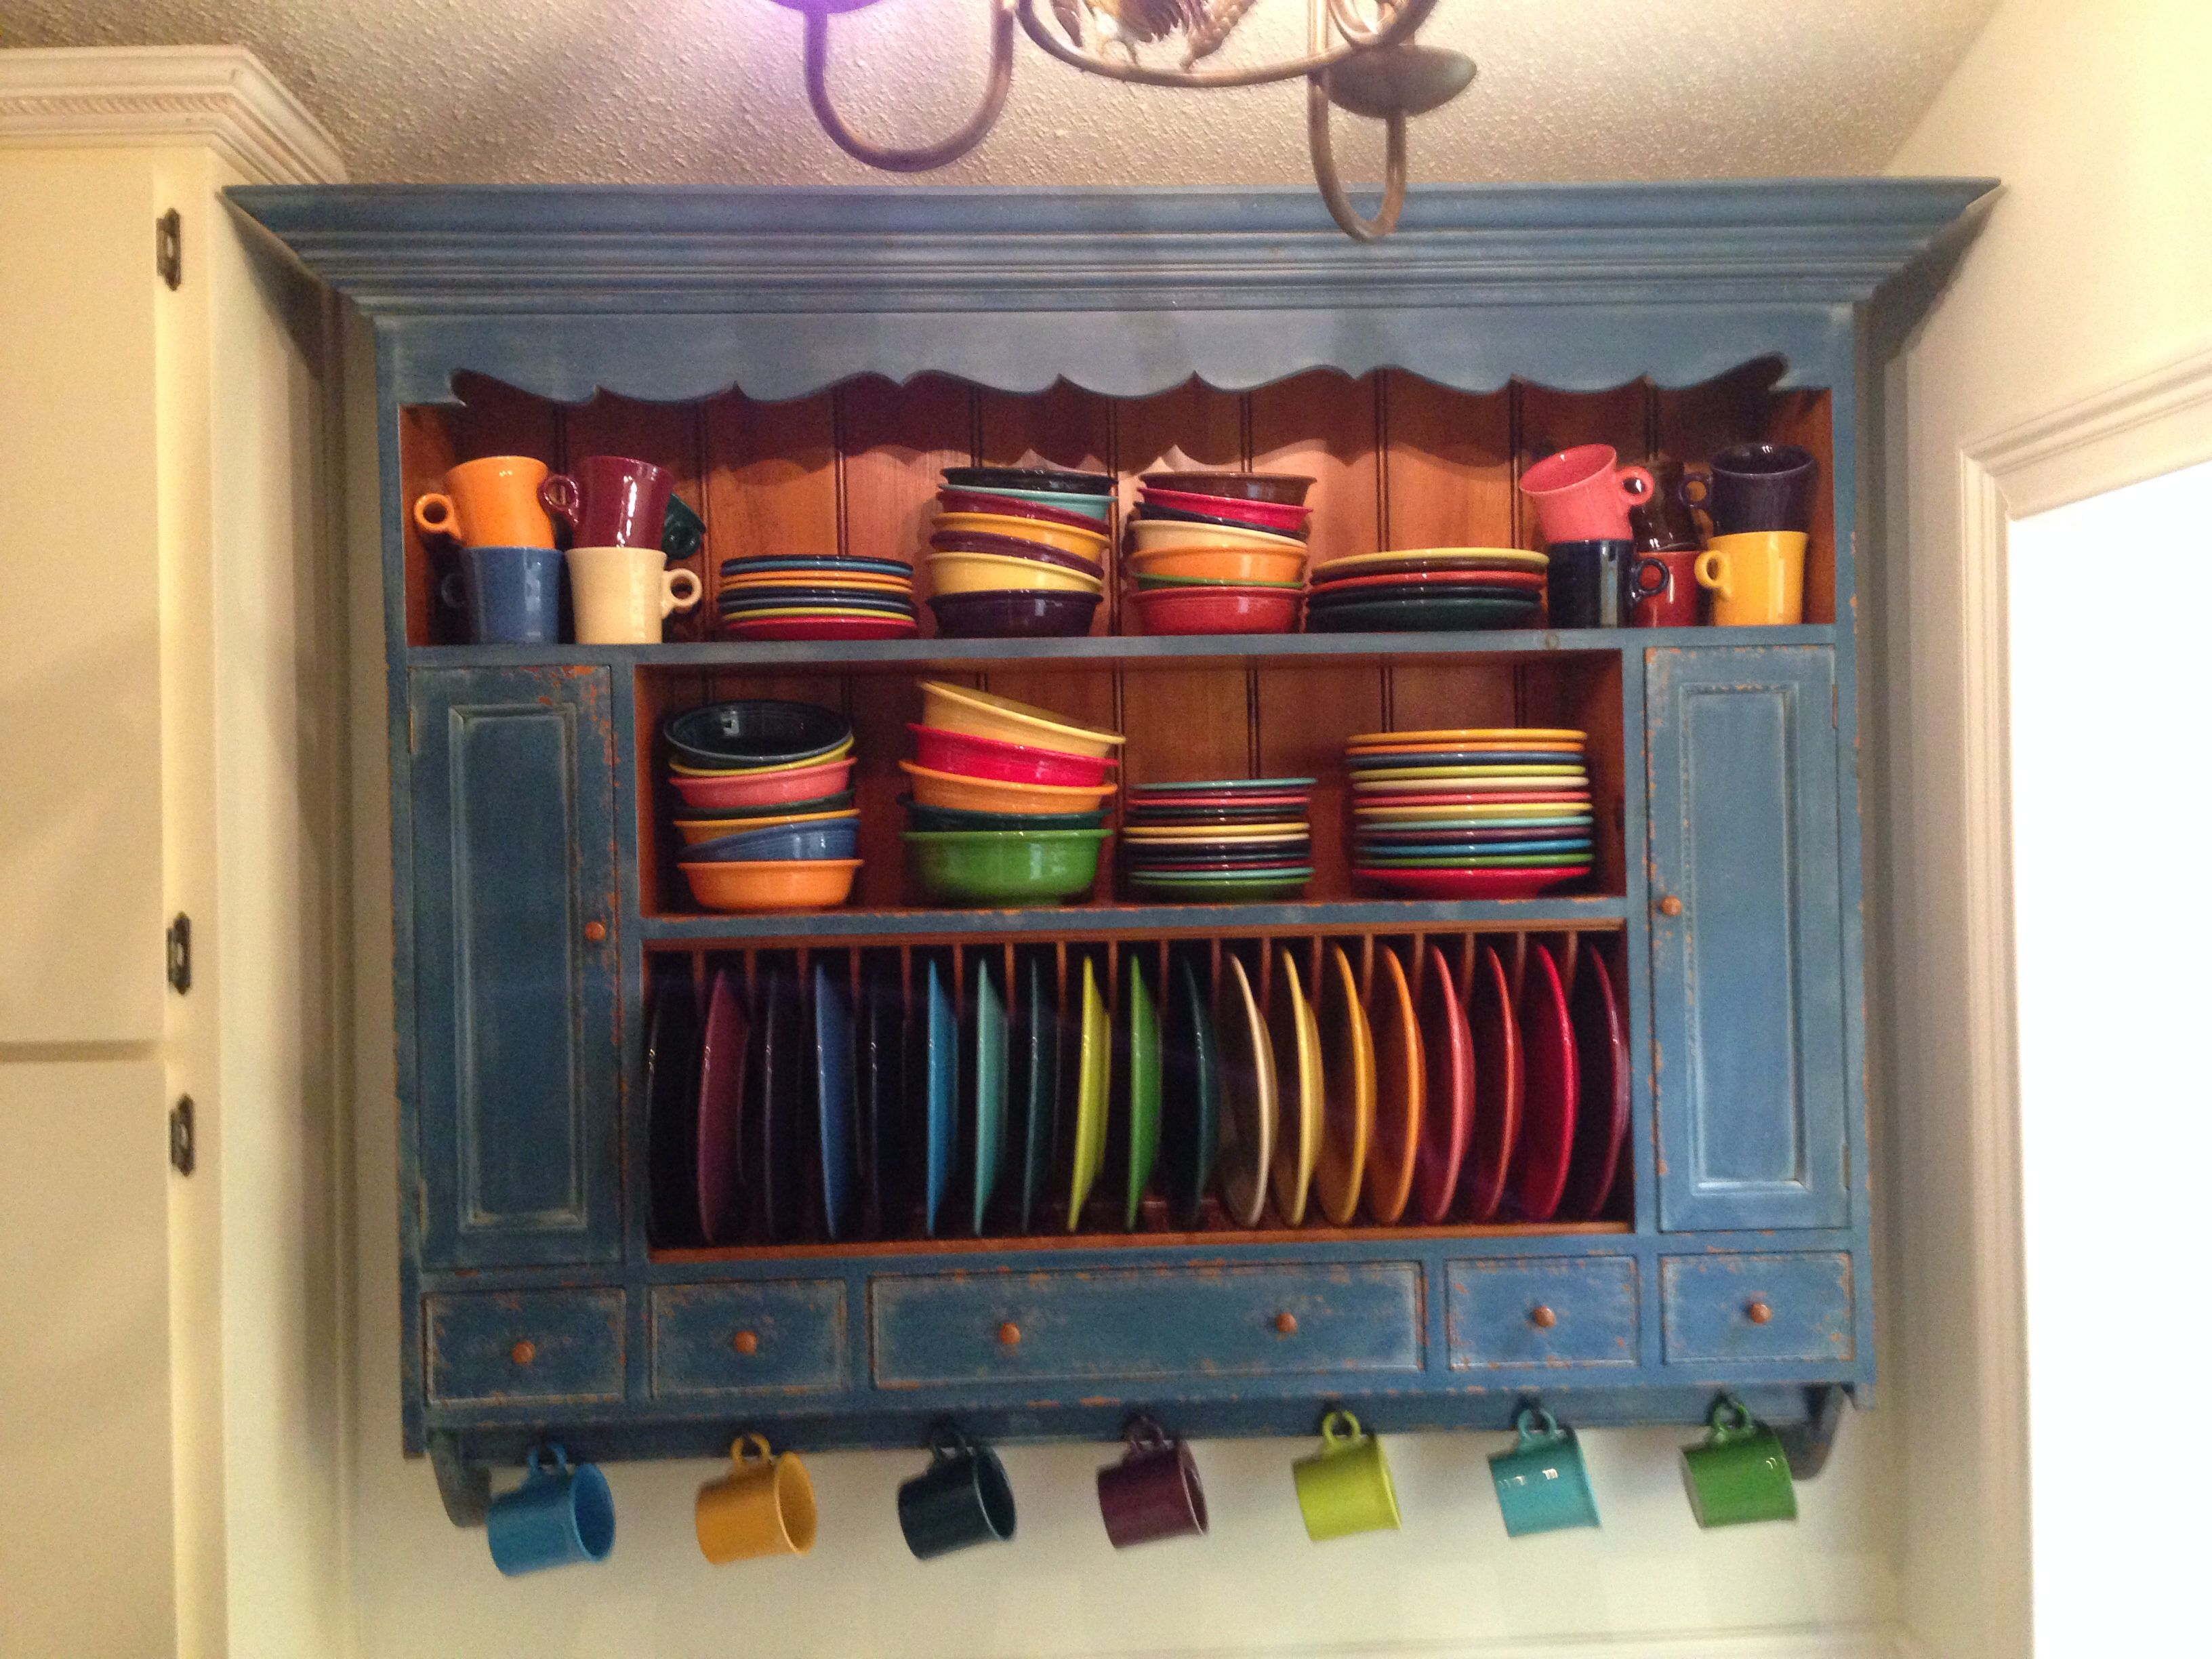 Finally found the perfect plate rack (Chalon) for my Fiesta Ware ...